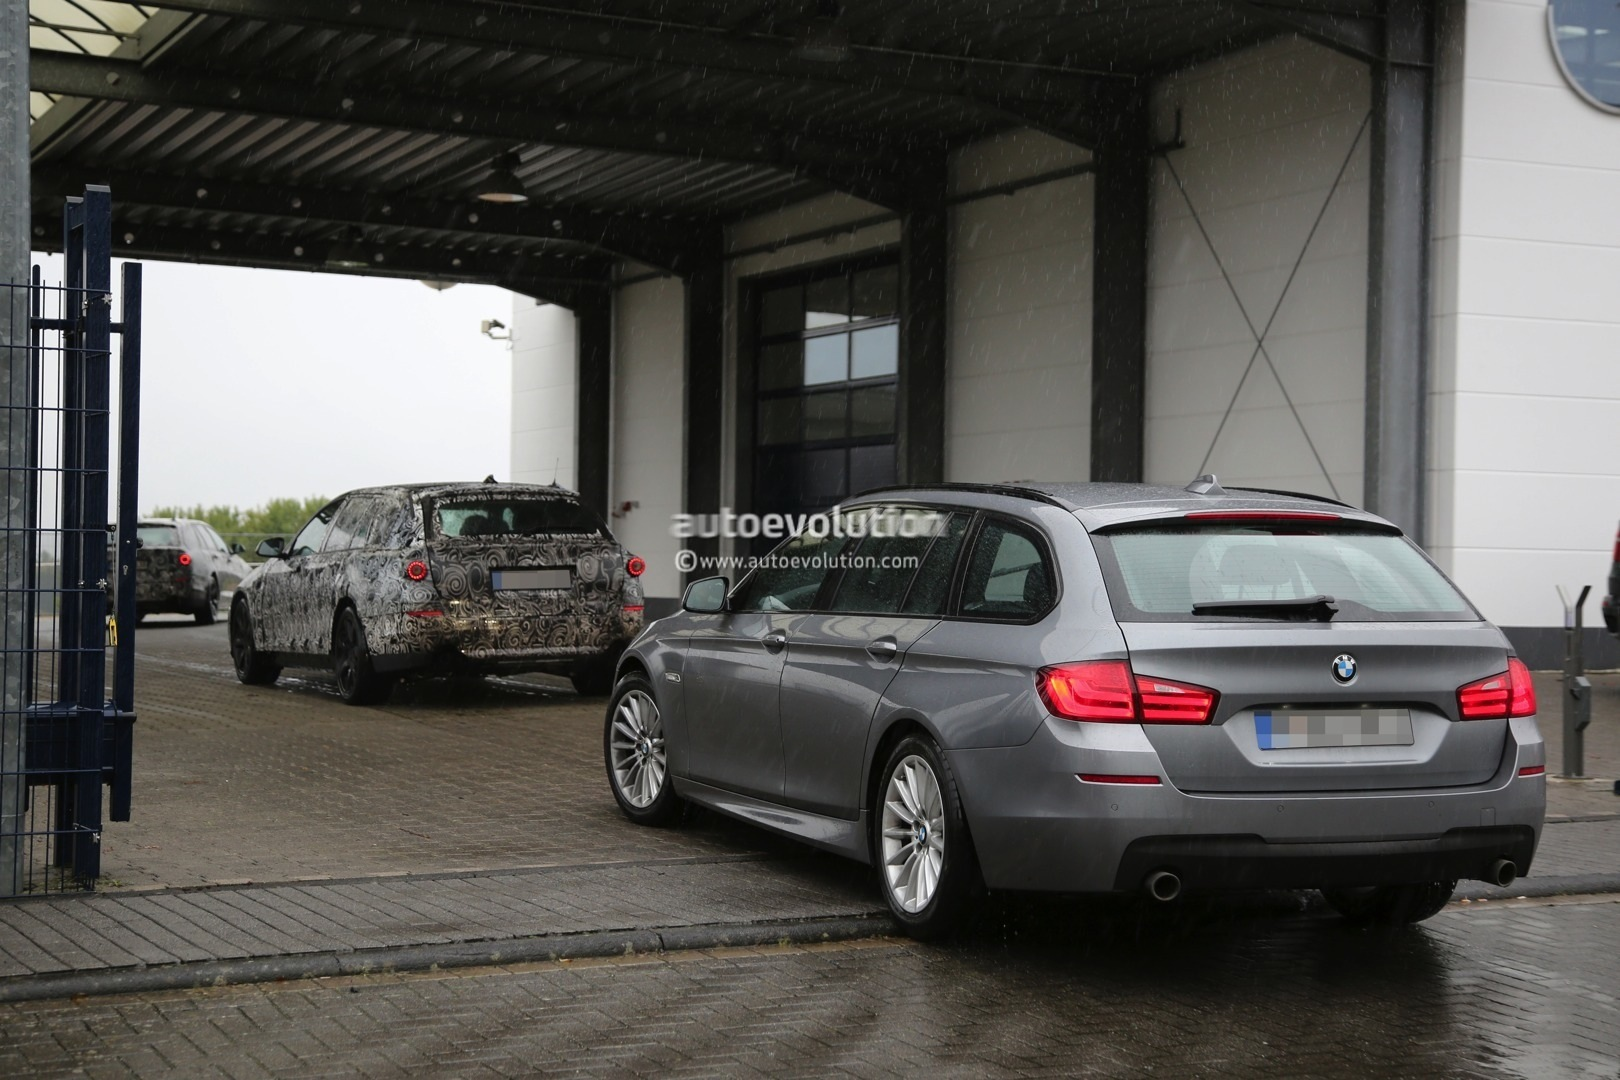 2016 bmw g31 5 series touring spied breaking down. Black Bedroom Furniture Sets. Home Design Ideas